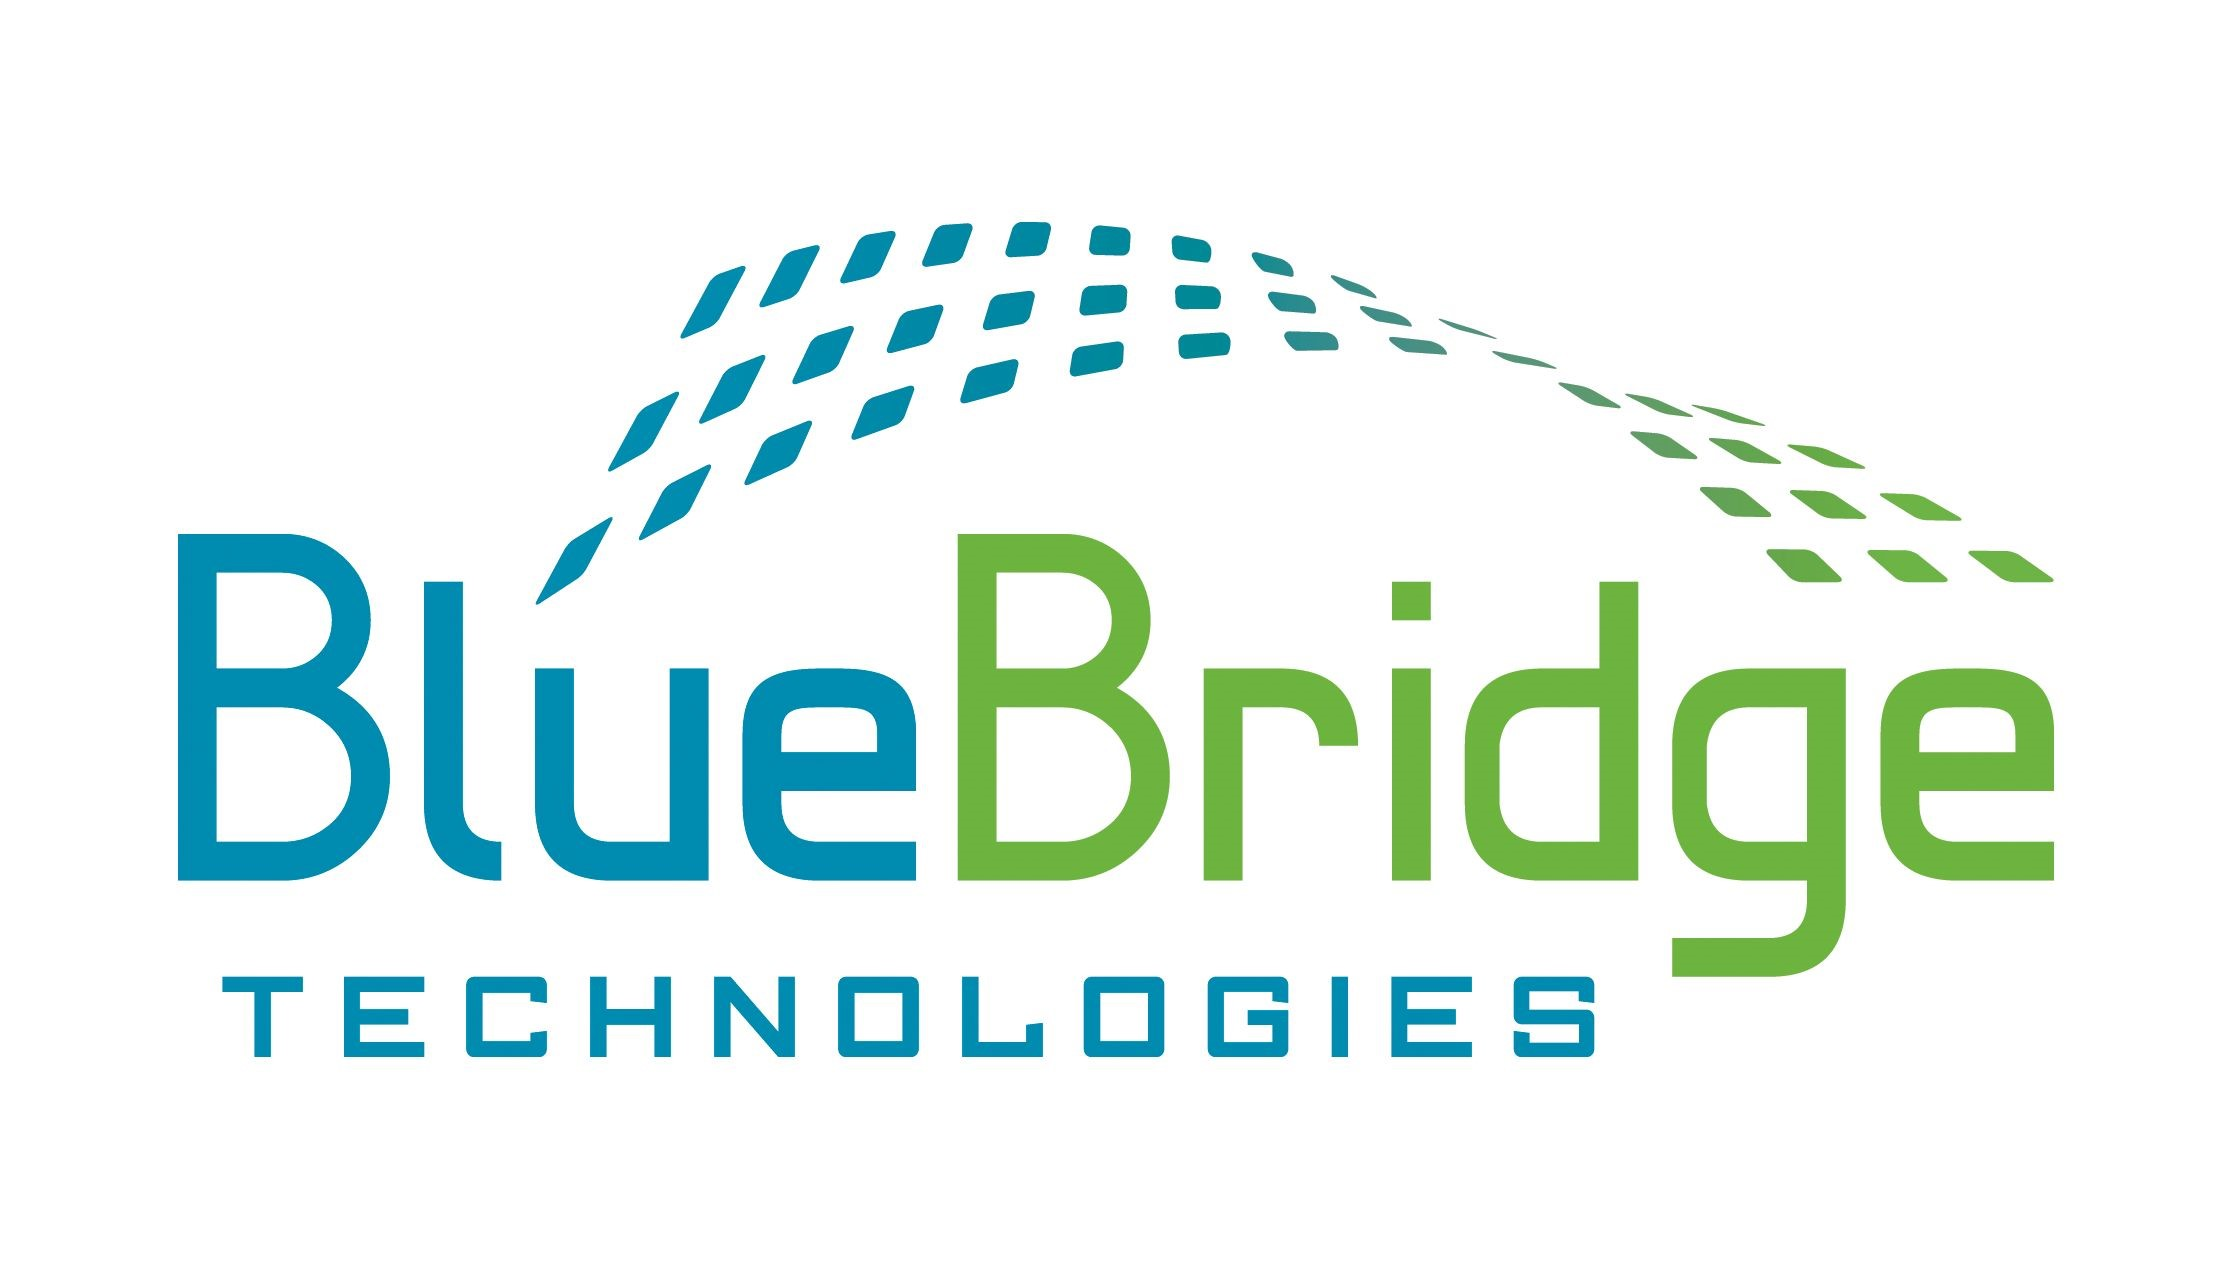 BlueBridge Technologies.jpg